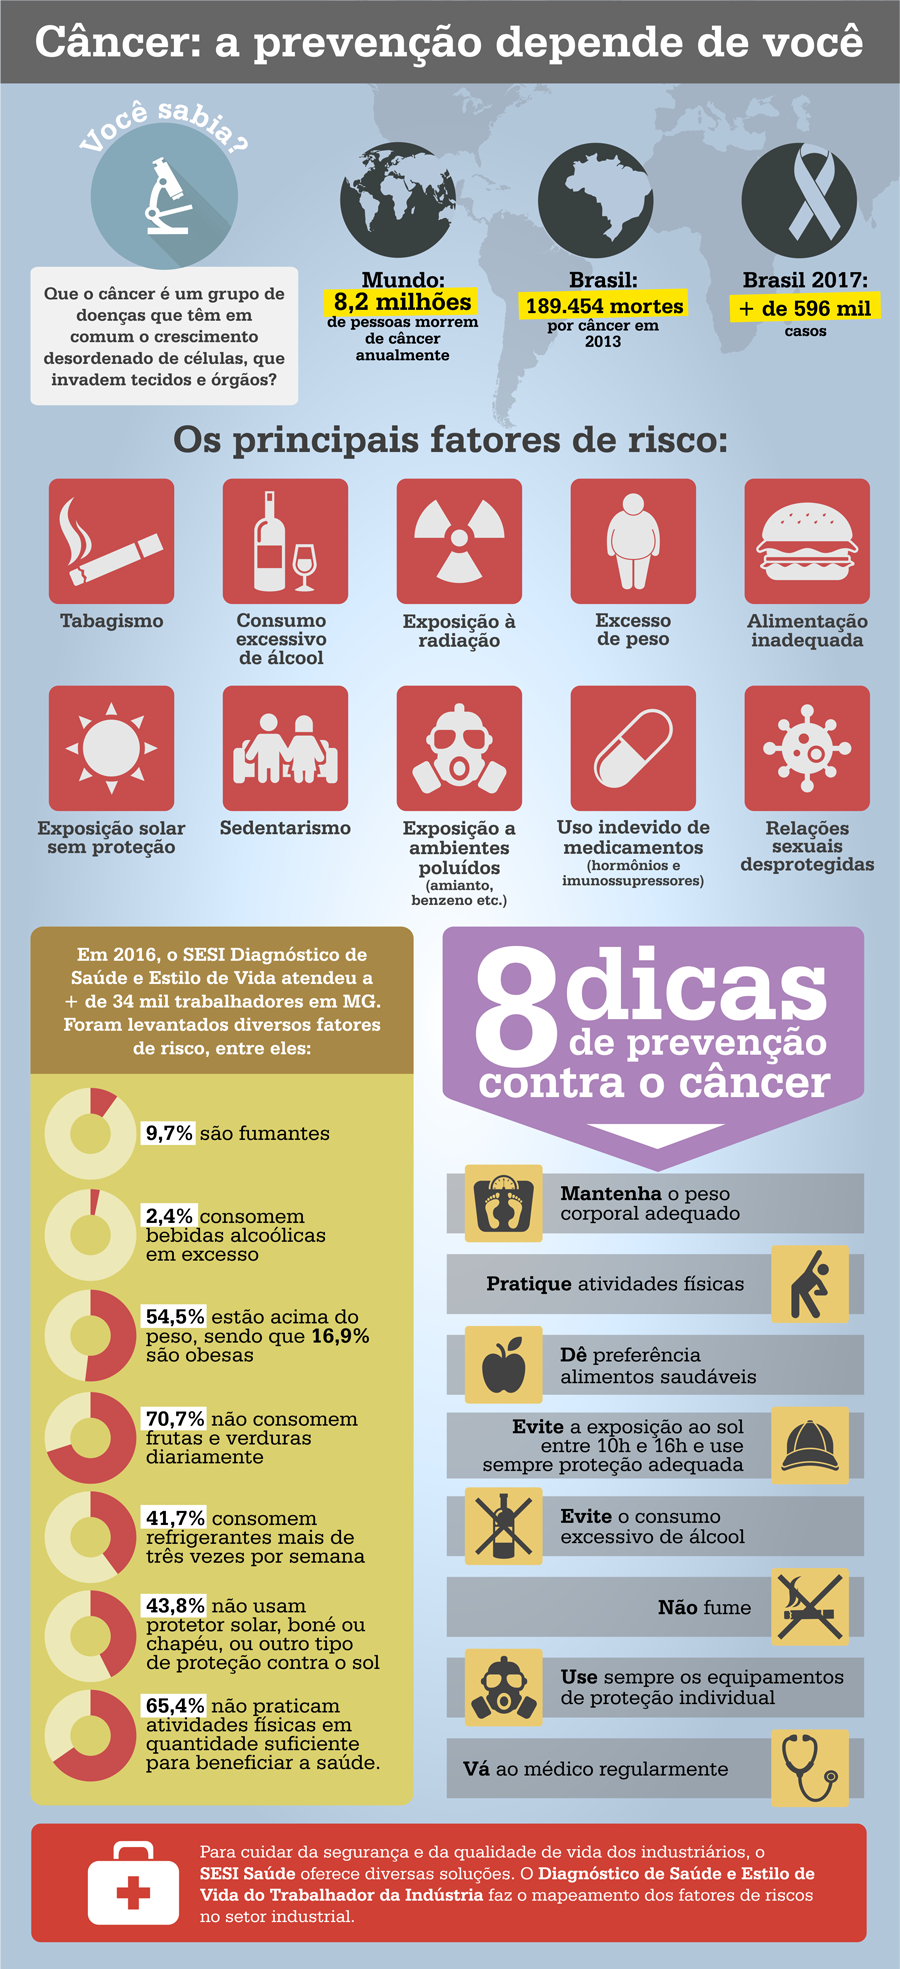 CancerInfografico.png